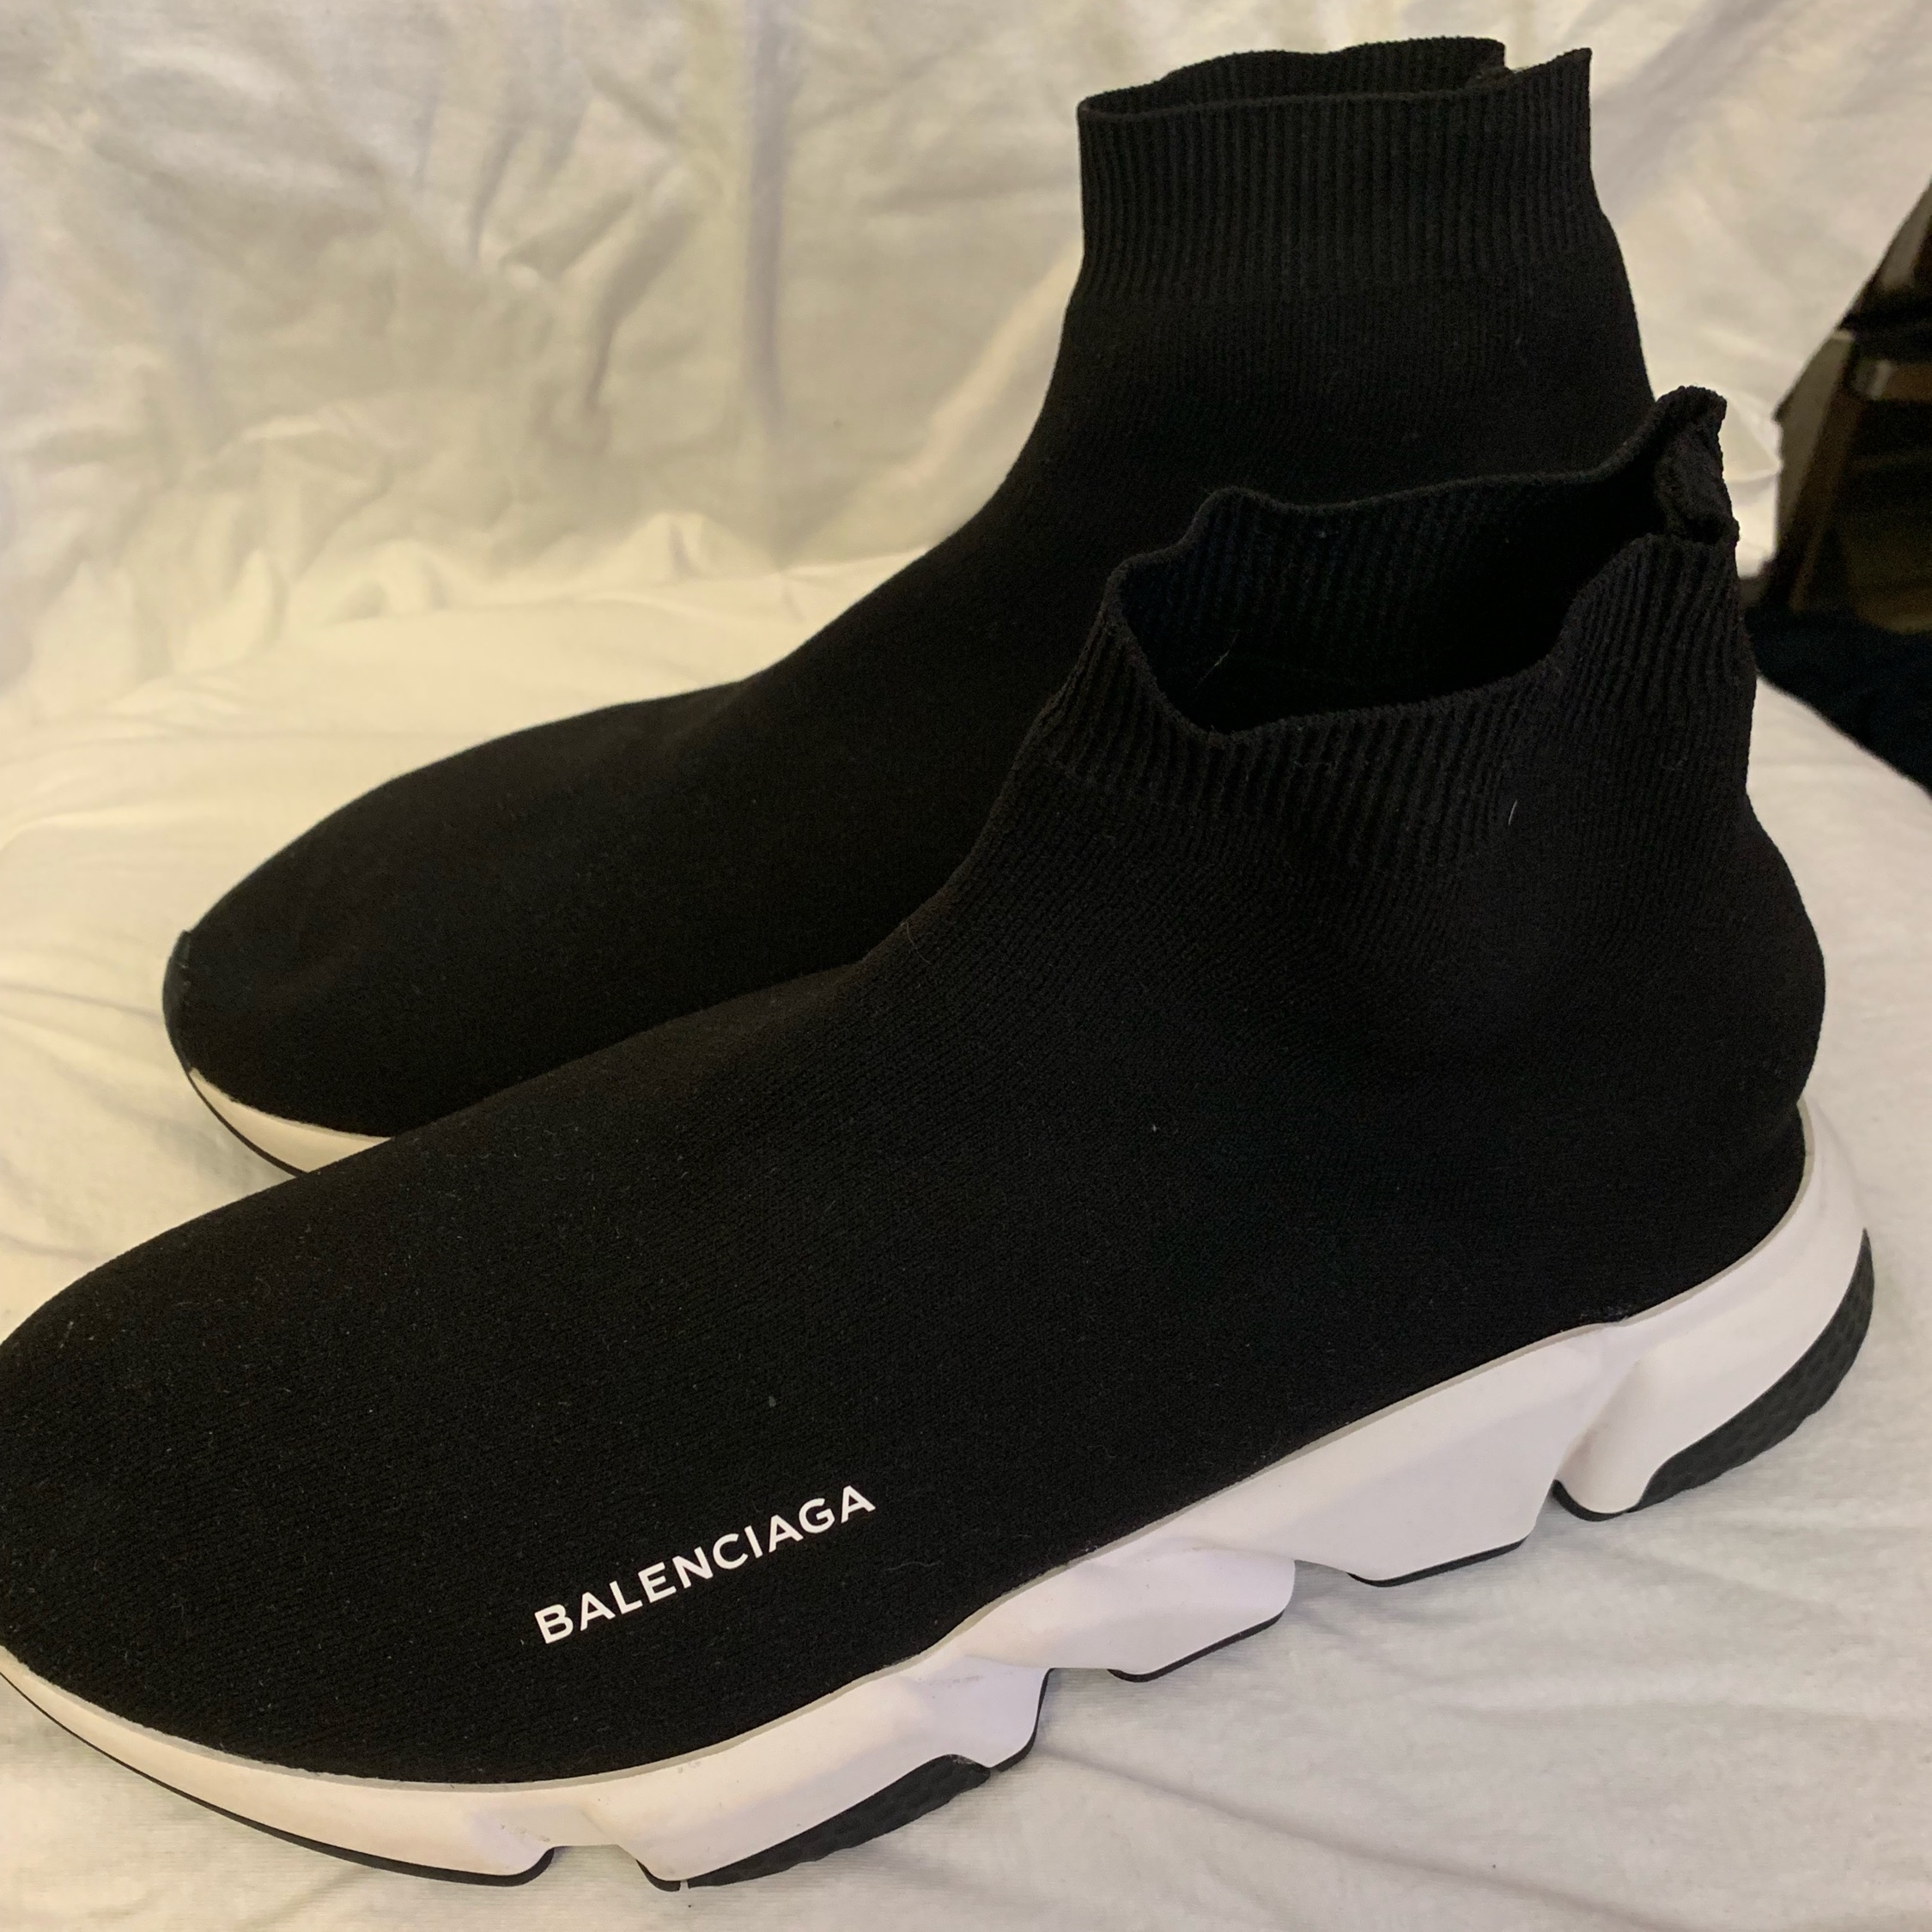 online for sale super specials delicate colors coupon code for balenciaga speed c9fb6 c232c